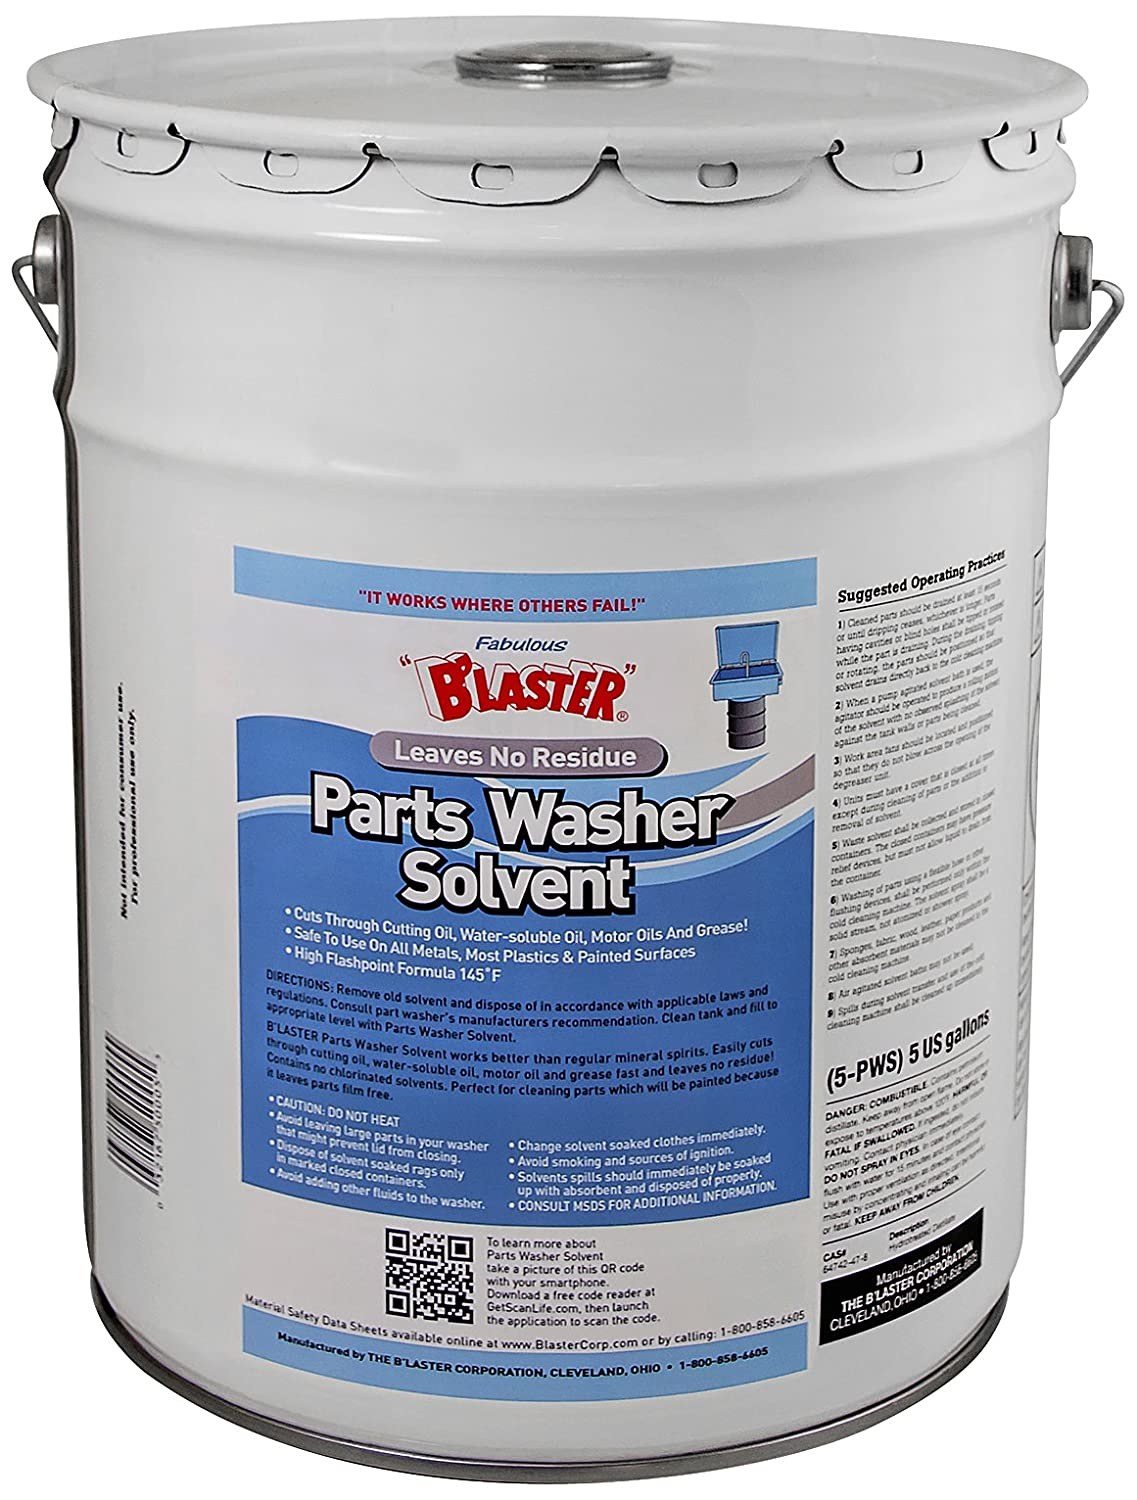 B'laster - 5-PWS - Parts Wash Solvent - 5-Gallon